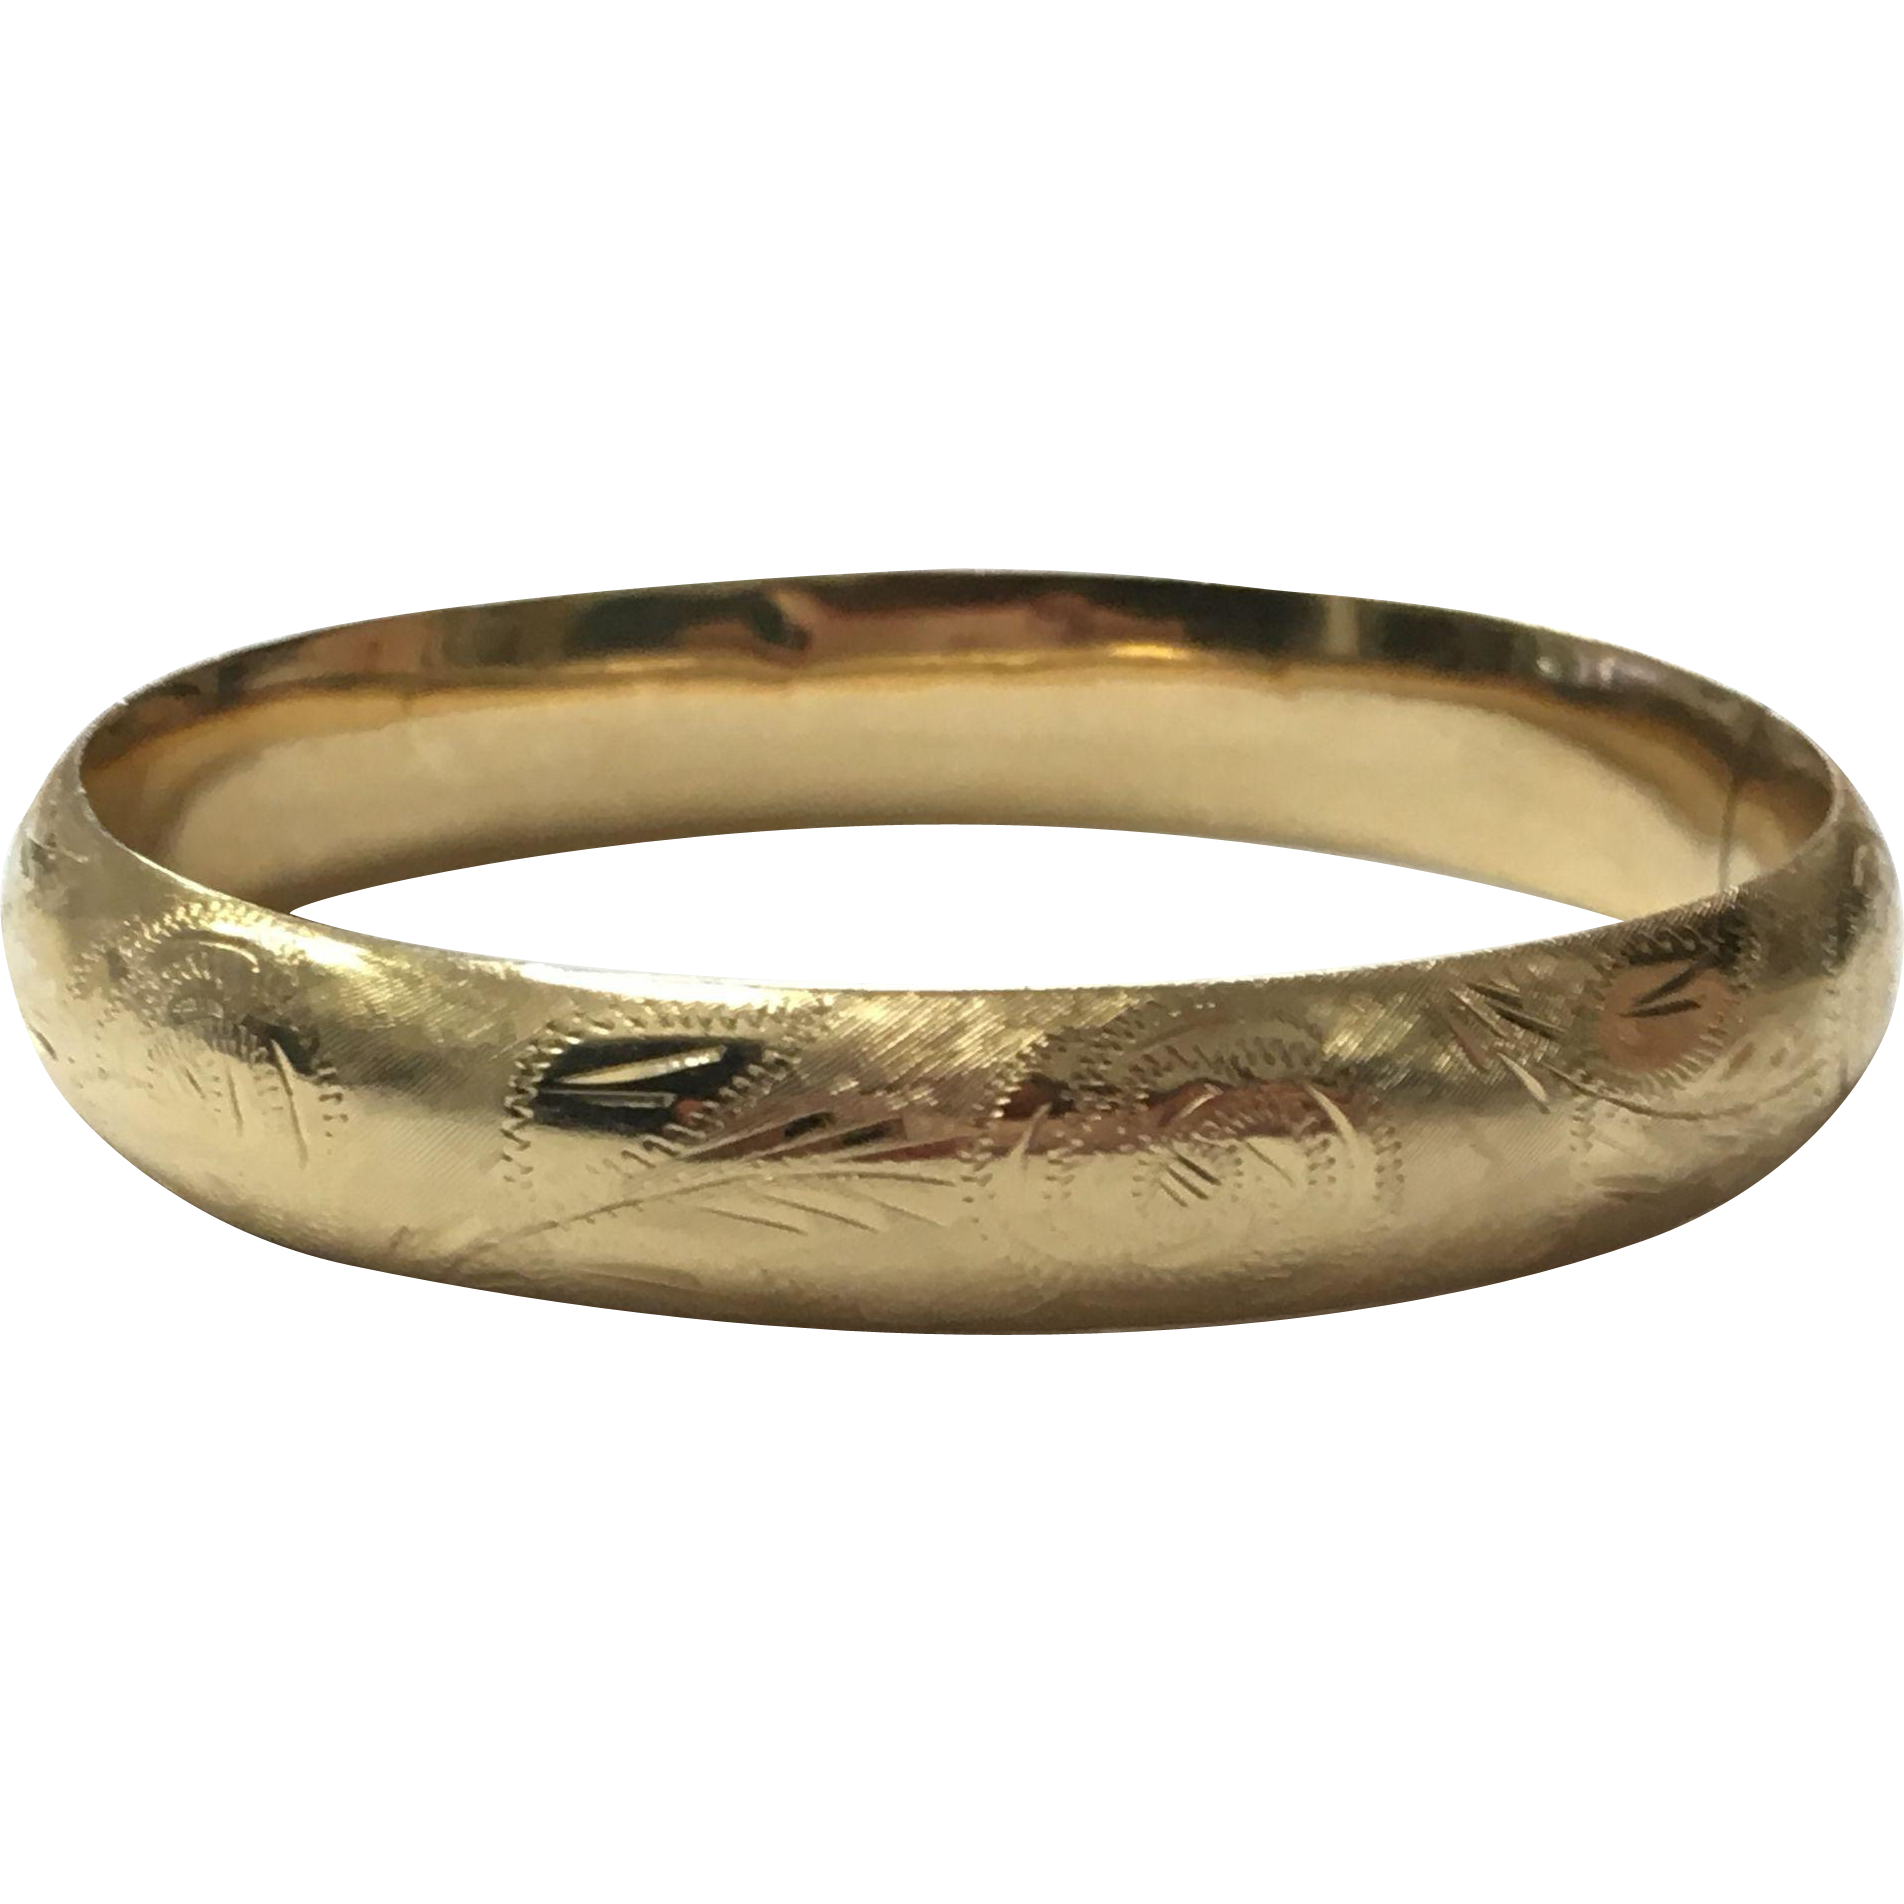 gold case sovereign bangle bracelet greek luxury solid full handmade yellow bangles art